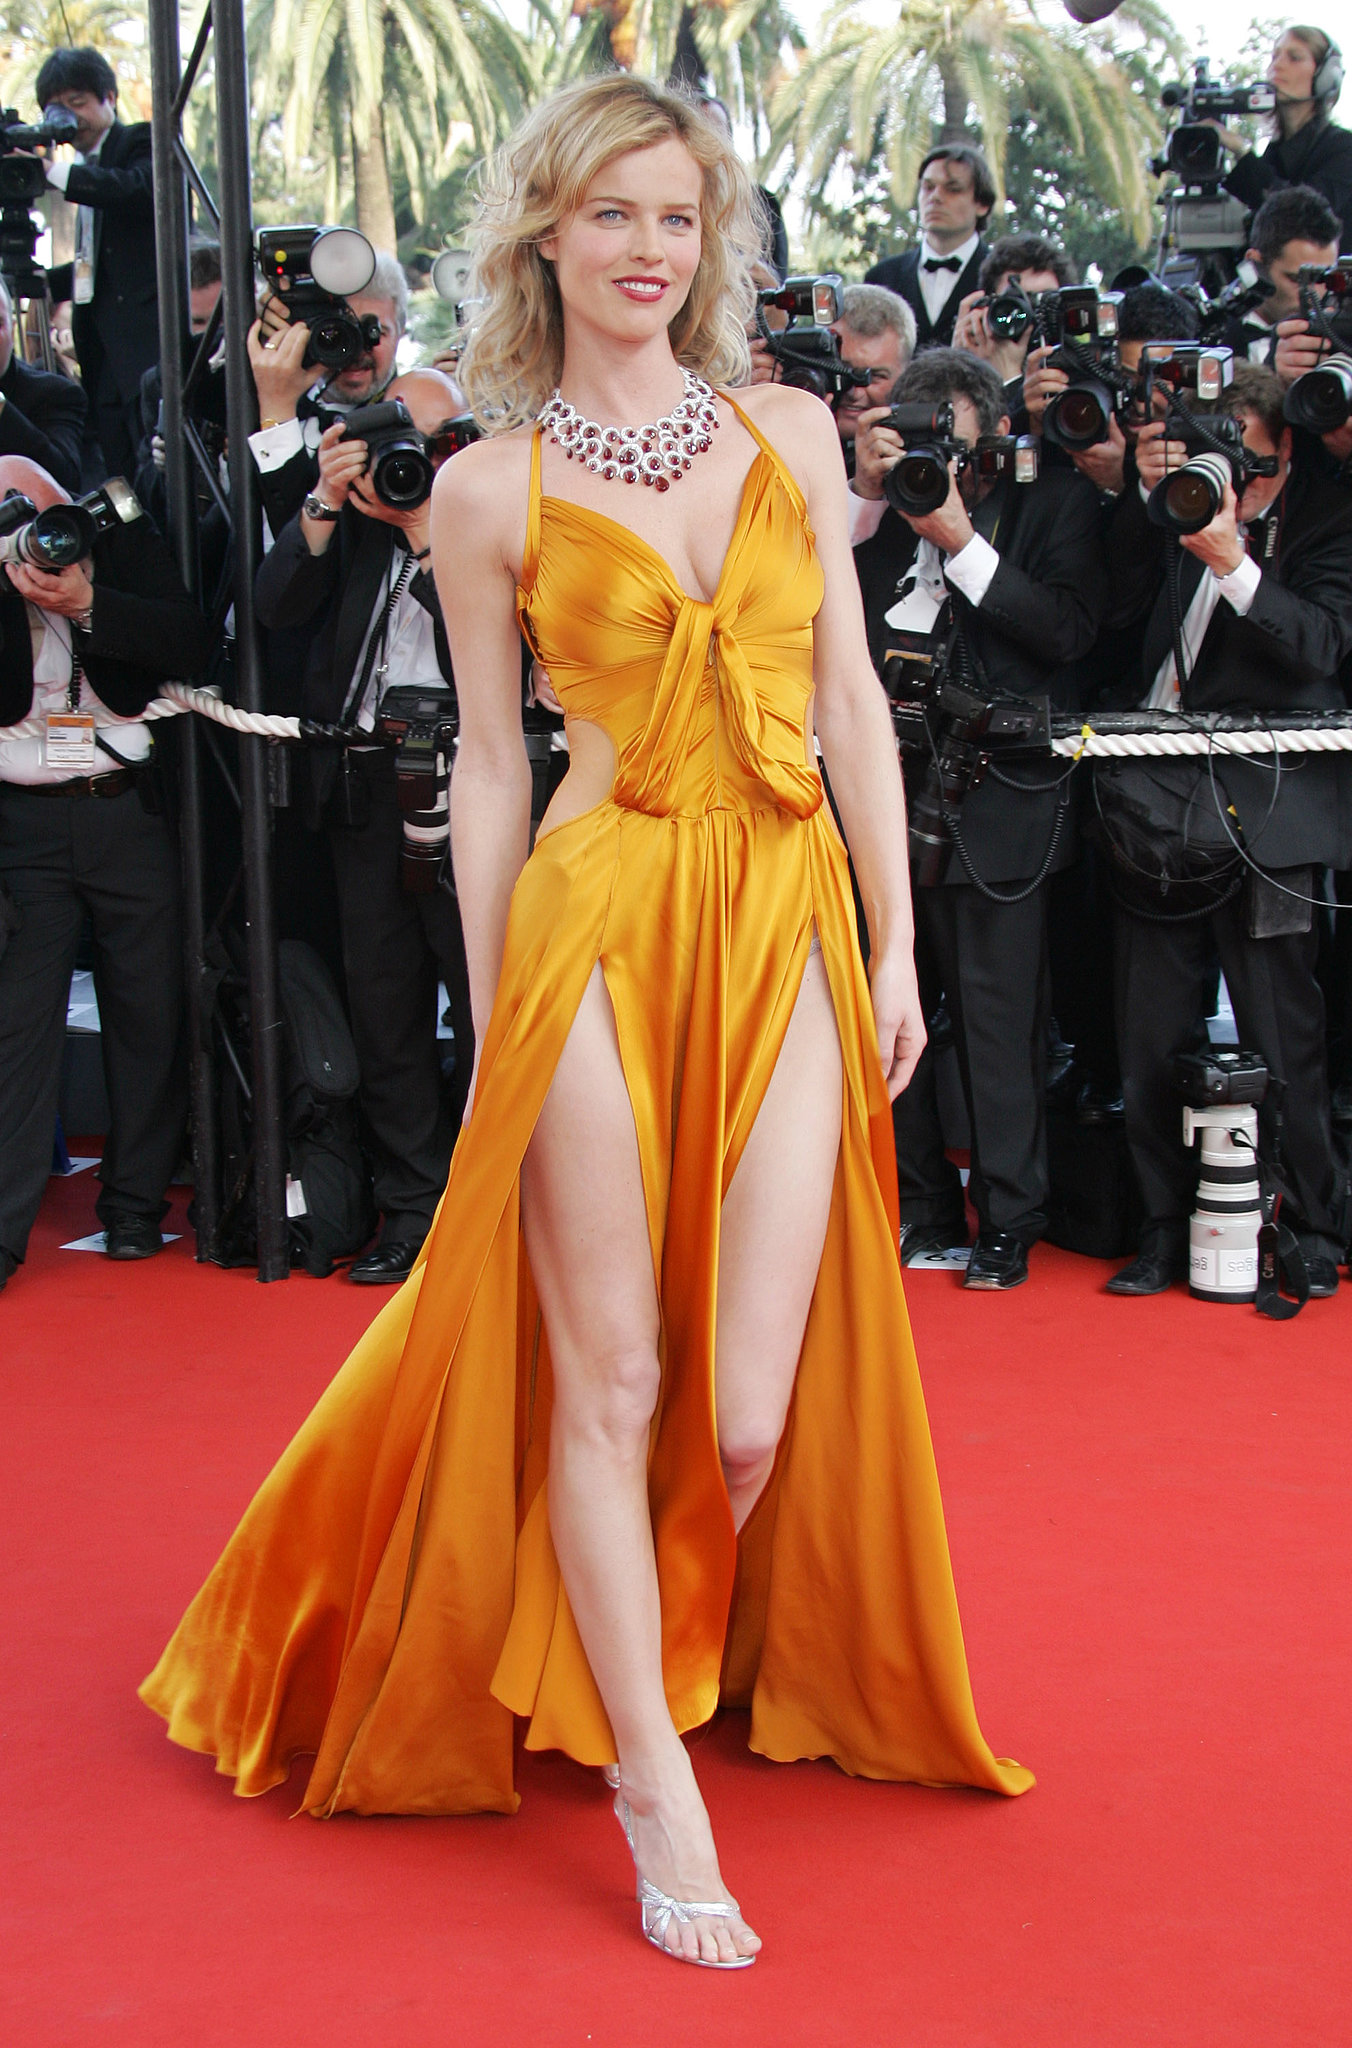 Eva Herzigova bared both legs in a dramatic dress from Anna Molinari at the 2006 Cannes premiere of The Da Vinci Code.